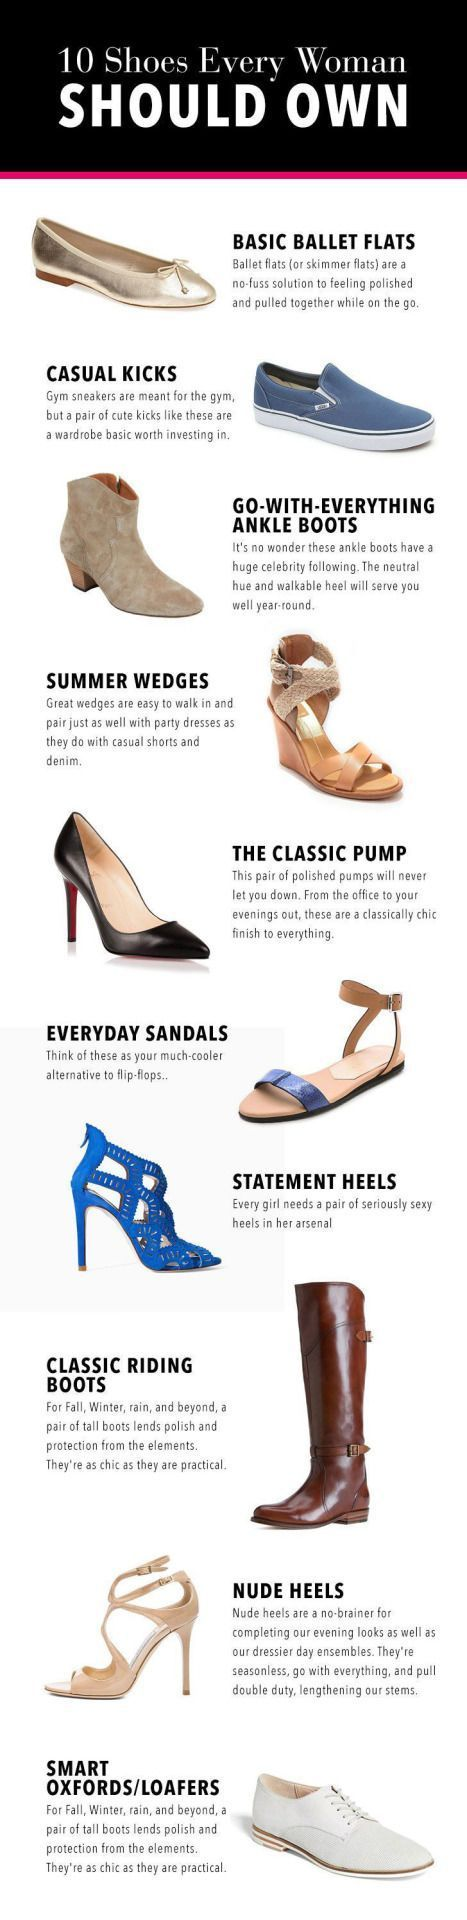 10 shoes every woman should own. Basic ballet flats, casual kicks, go with everything ankle boots, summer wedges, classic pump, everyday sandals, statement heels, classic riding boots, nude heels, smart oxfords or loafers.: